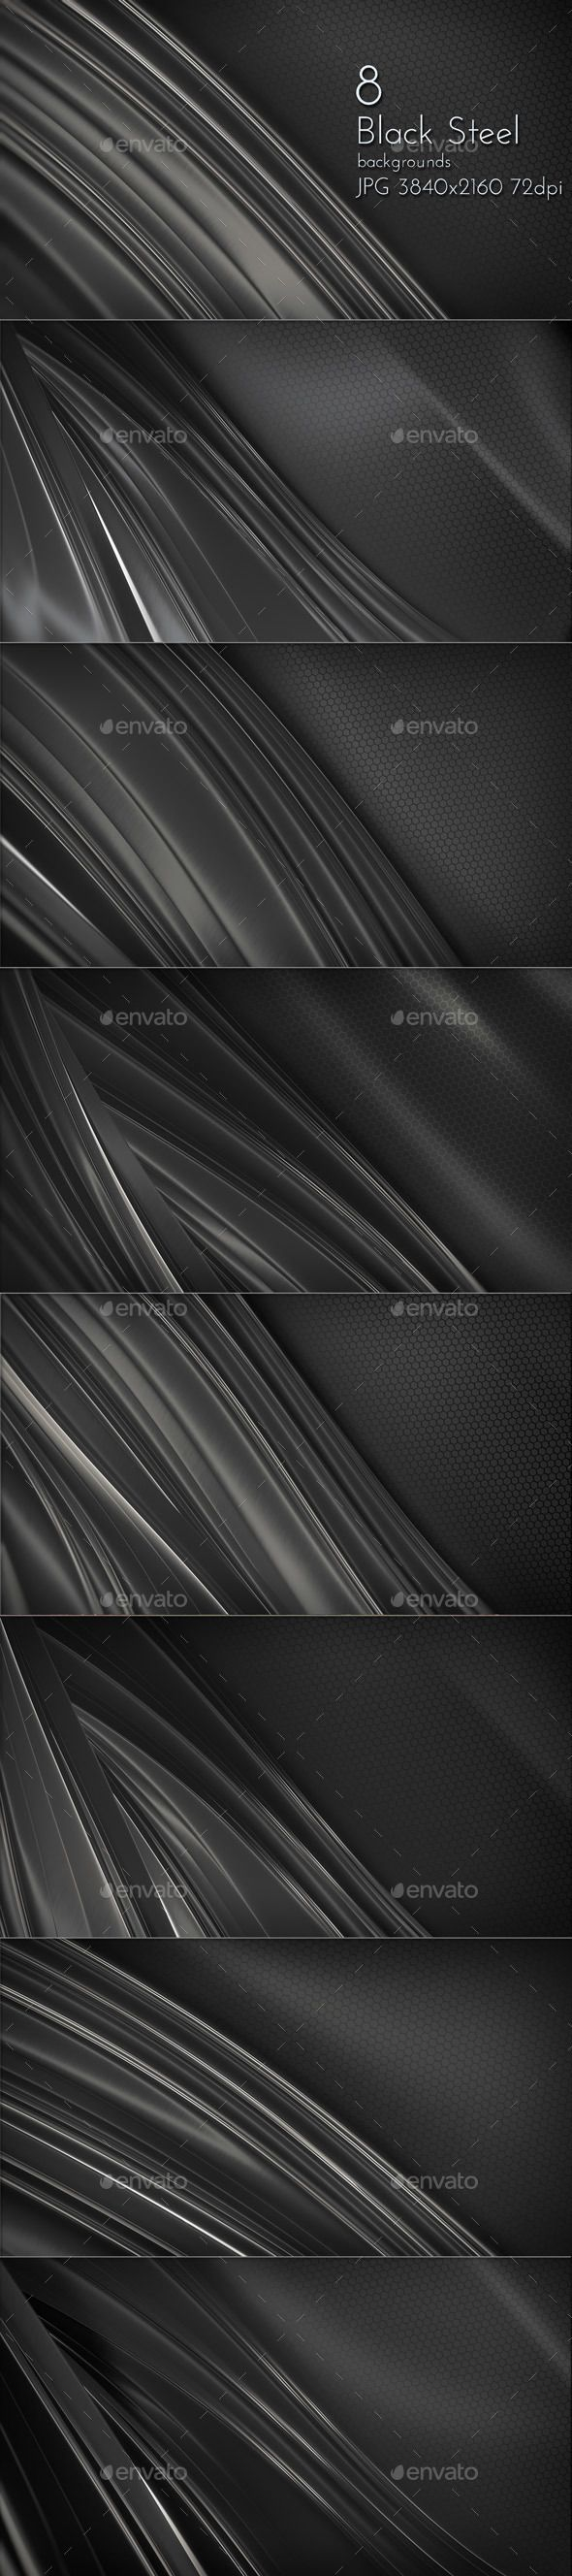 Black Steel Elegant Glossy Design Collection Backgrounds by cinema4design on Graphicriver, Dark Metal Wallpapers, Backdrops Collection for Web.